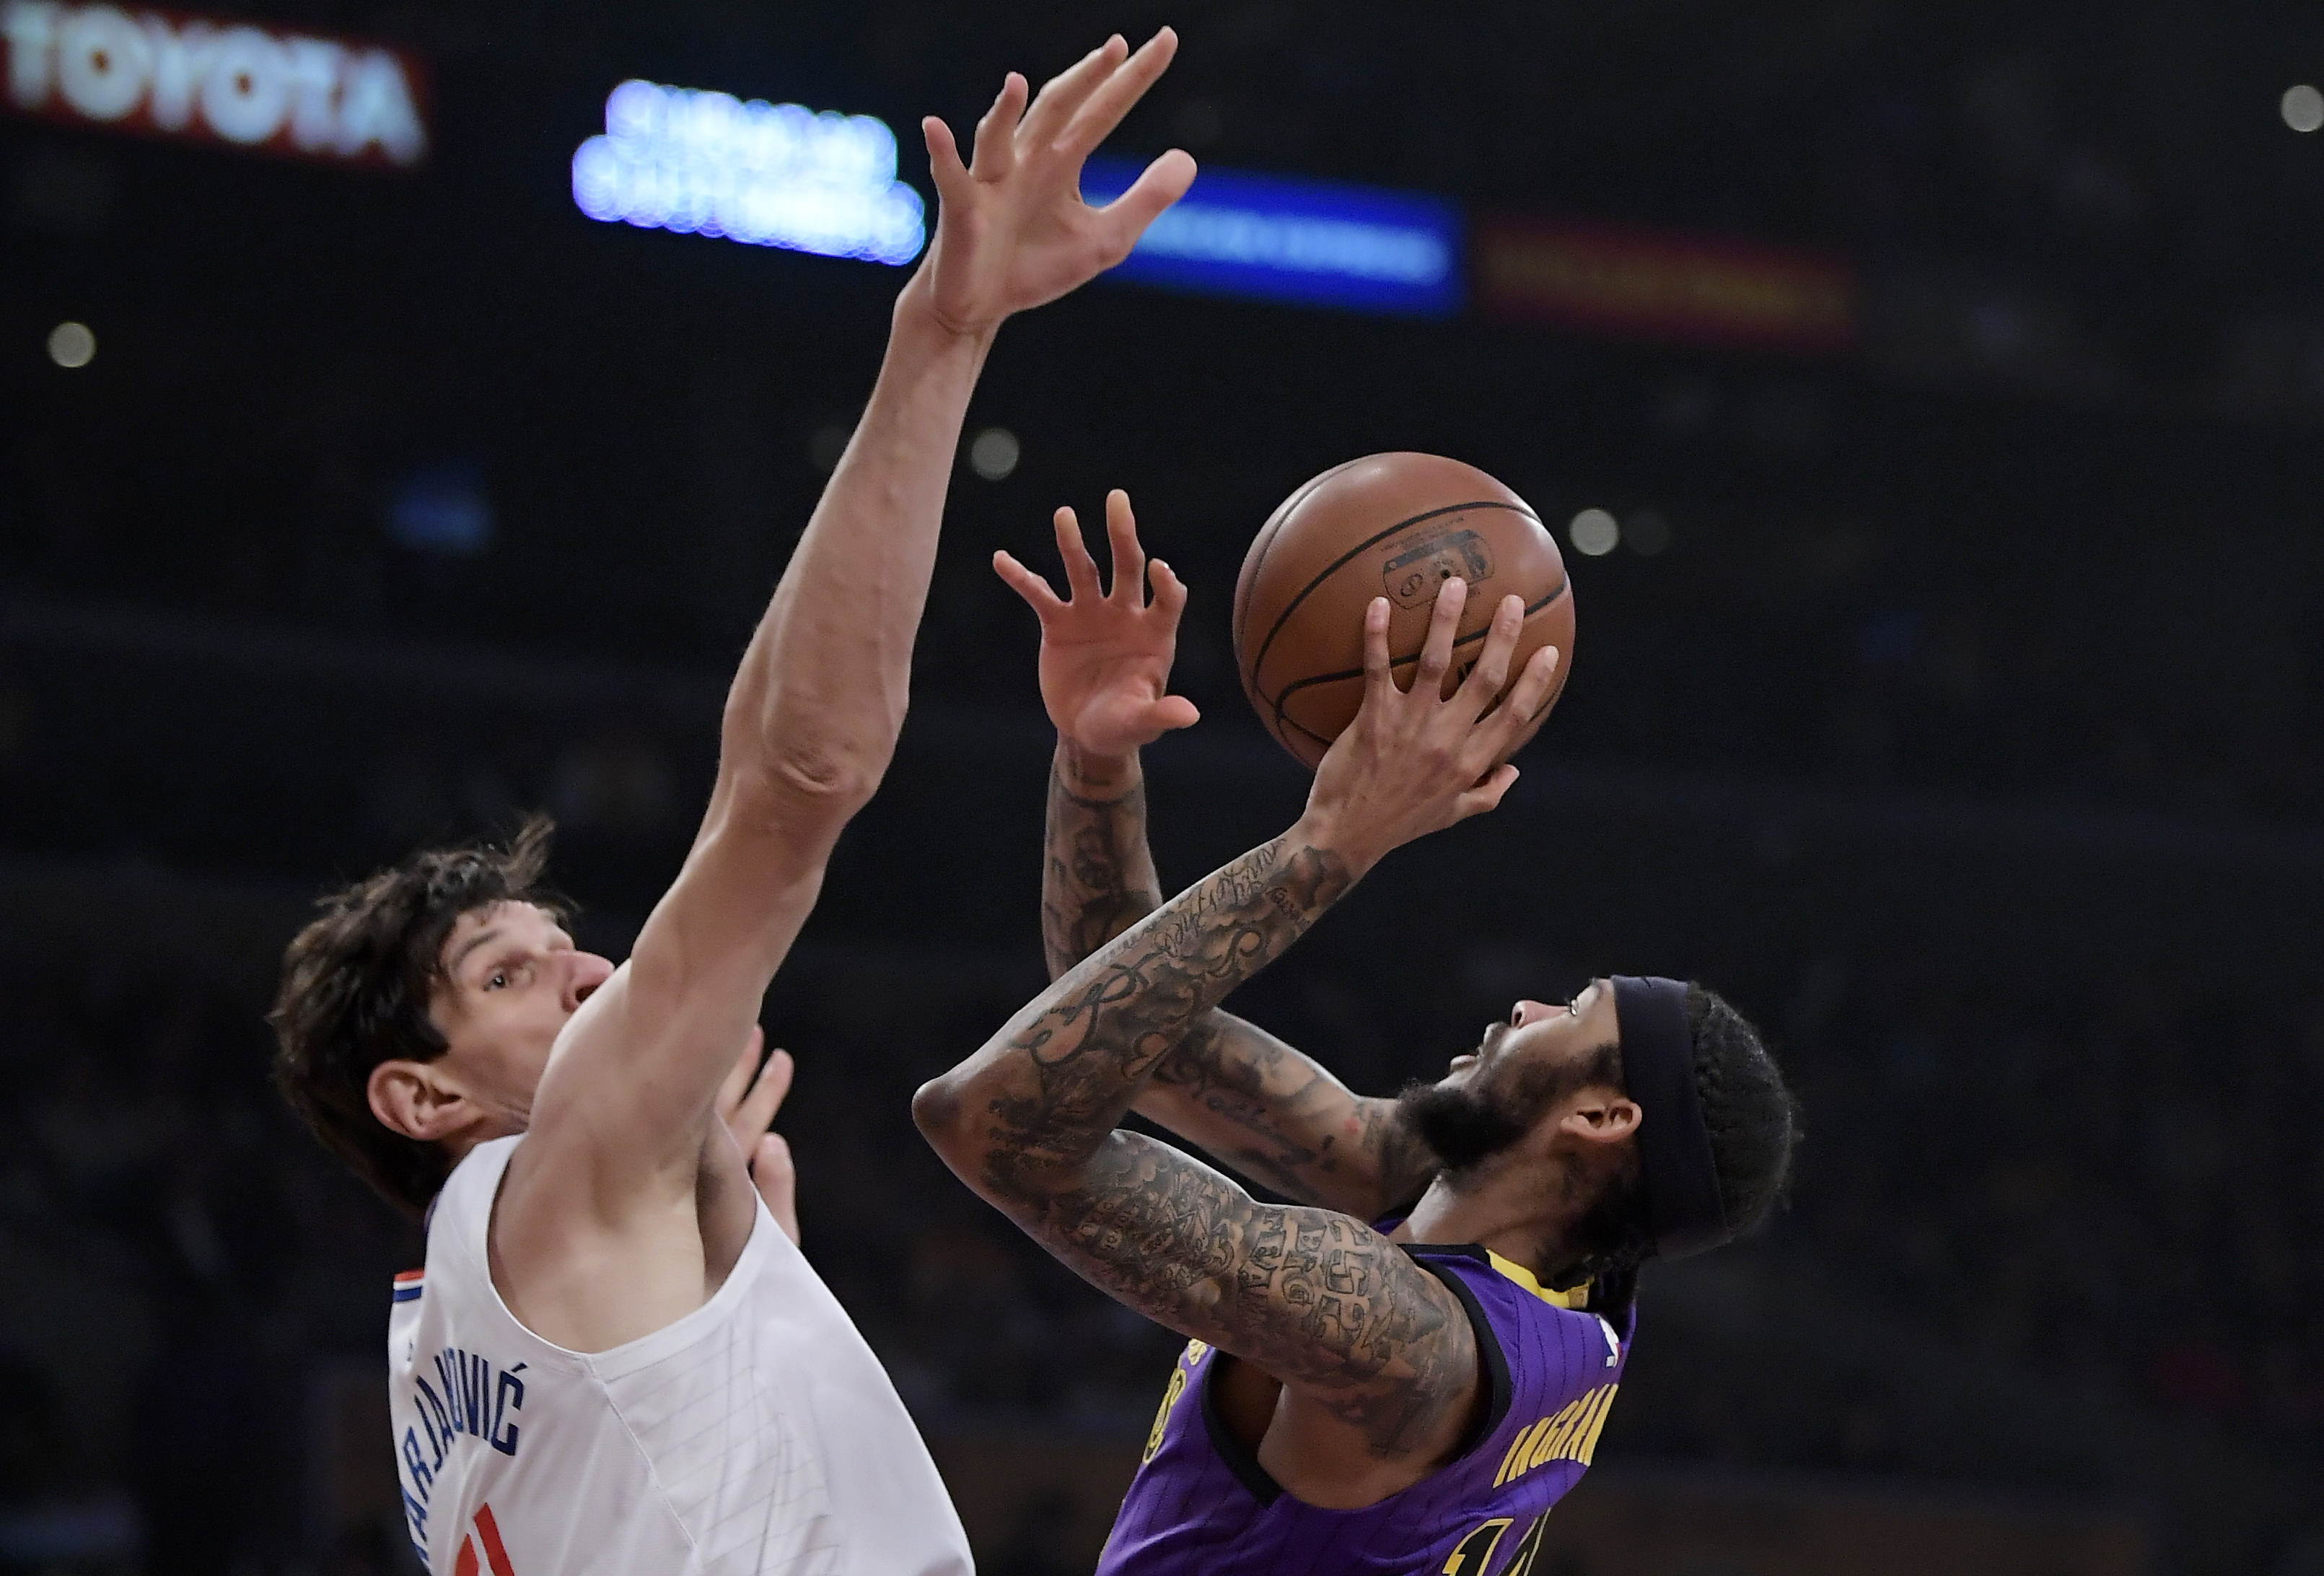 Los Angeles Lakers forward Brandon Ingram, right, shoots as Los Angeles Clippers center Boban Marjanovic defends during the first half of an NBA basketball game Friday, Dec. 28, 2018, in Los Angeles. (AP Photo/Mark J. Terrill)